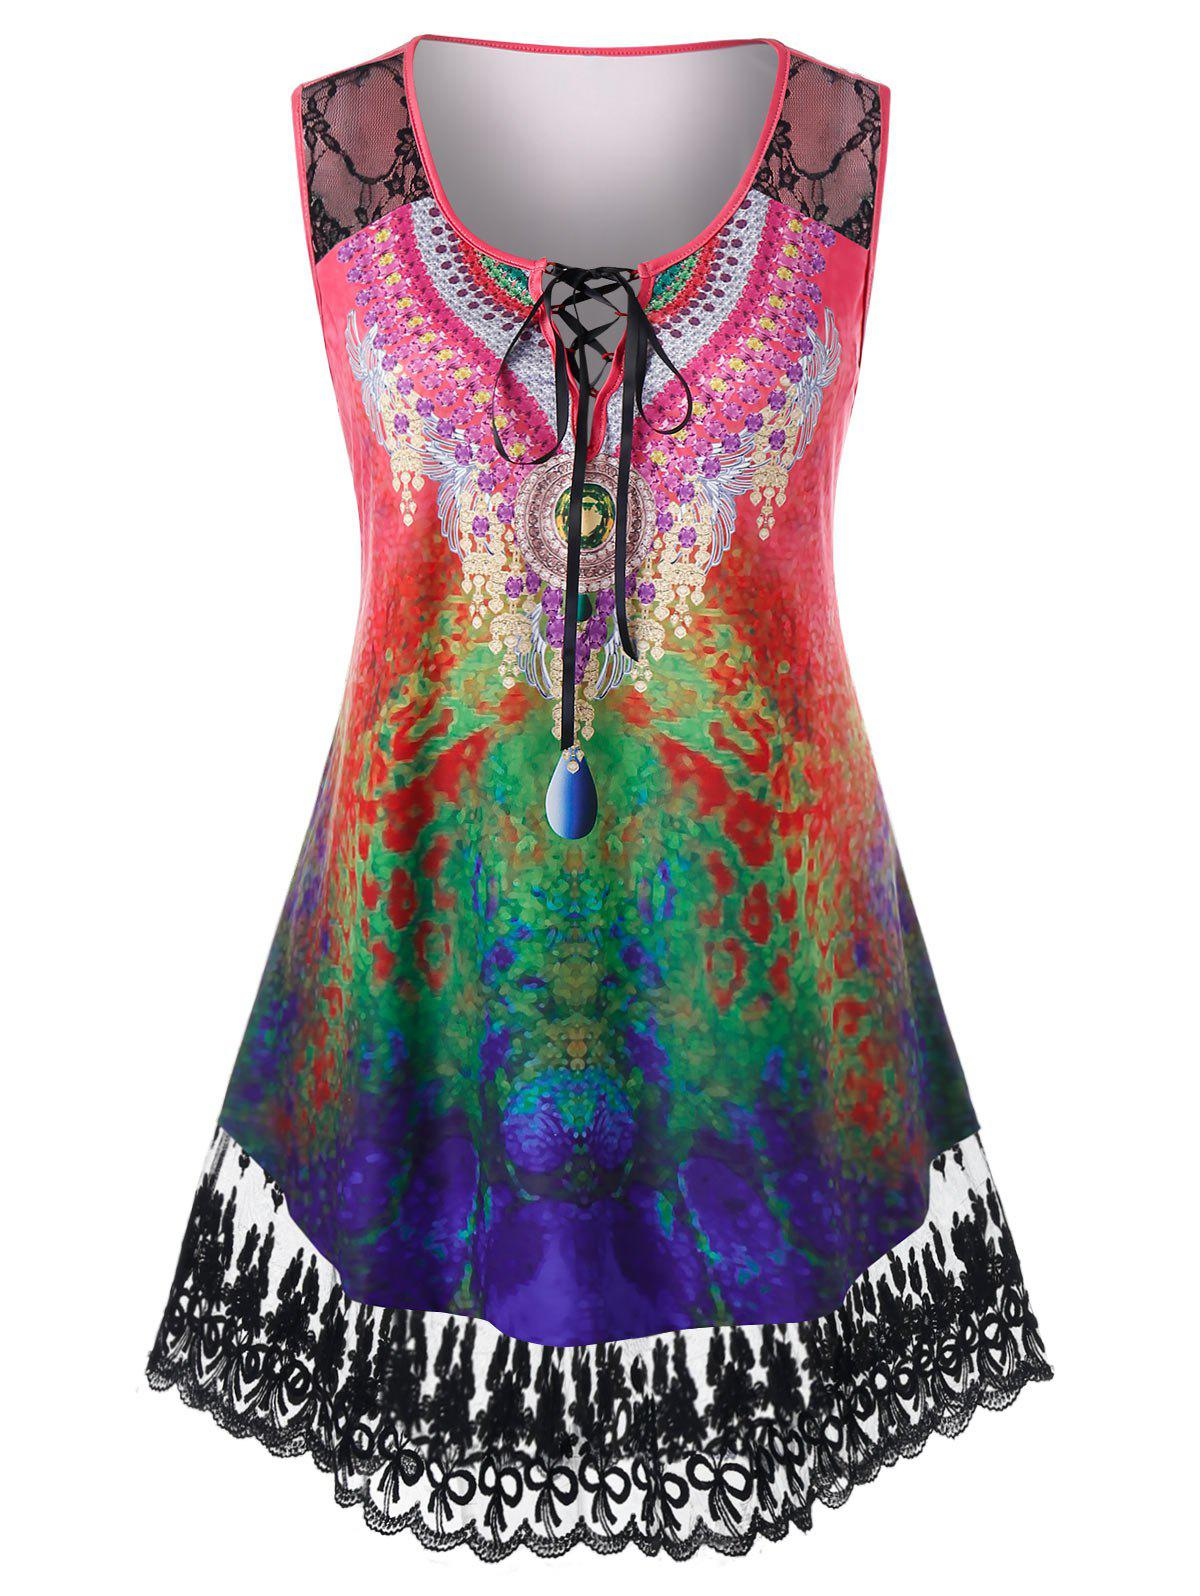 Plus Size Lace Panel Tie Dye Lace Up Curved Sheer Tank Top - multicolor 5X